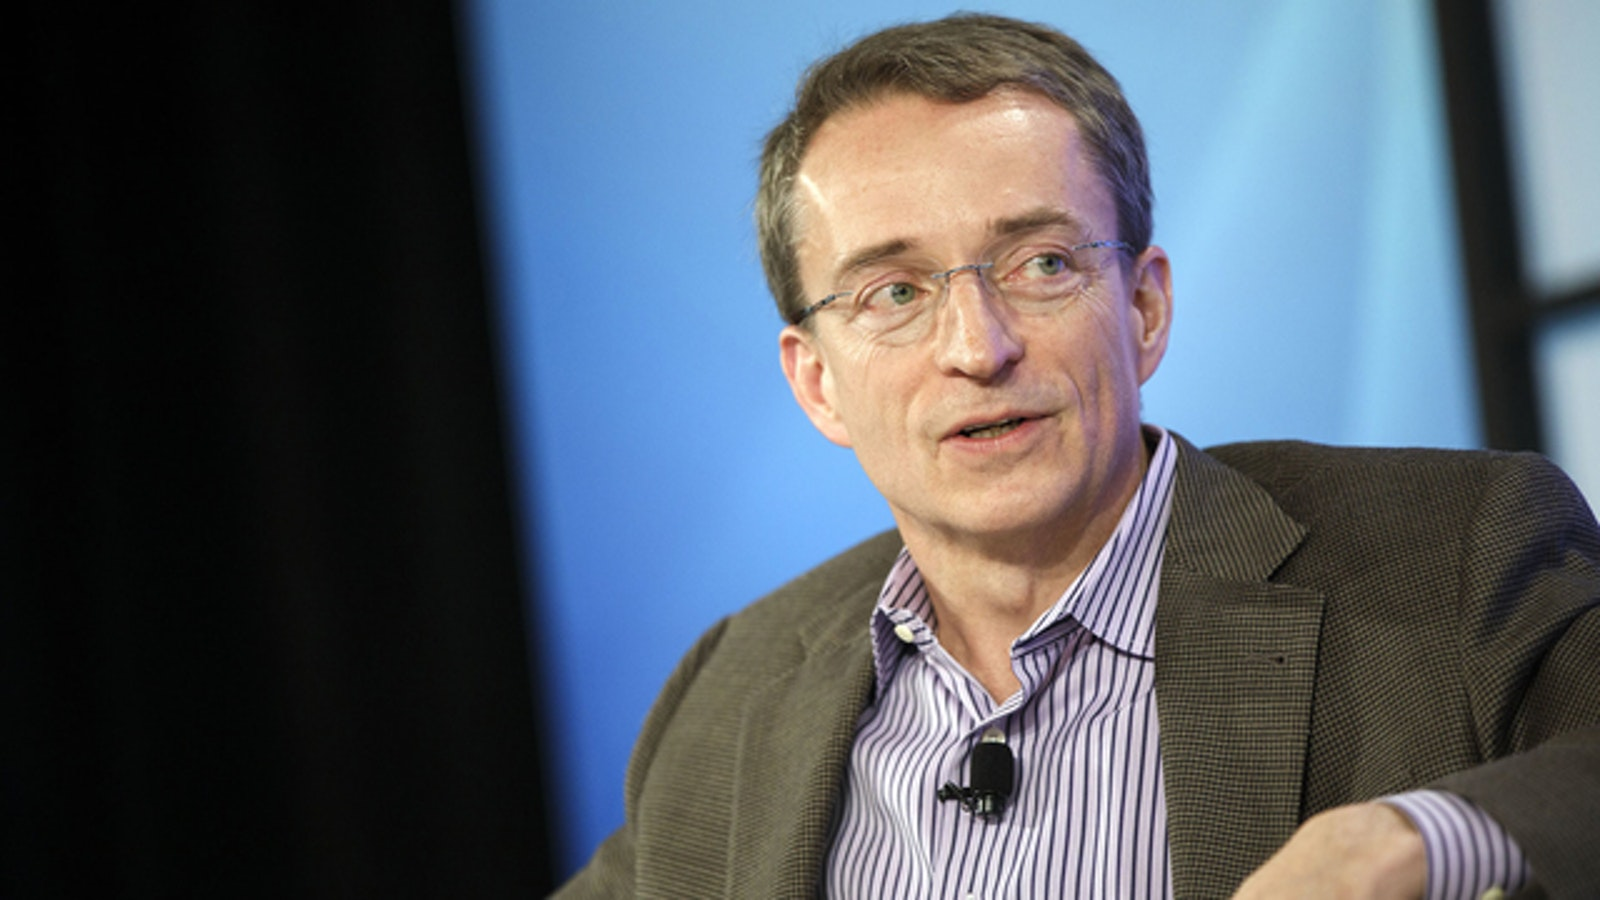 VMWare CEO Pat Gelsinger. Photo: Bloomberg